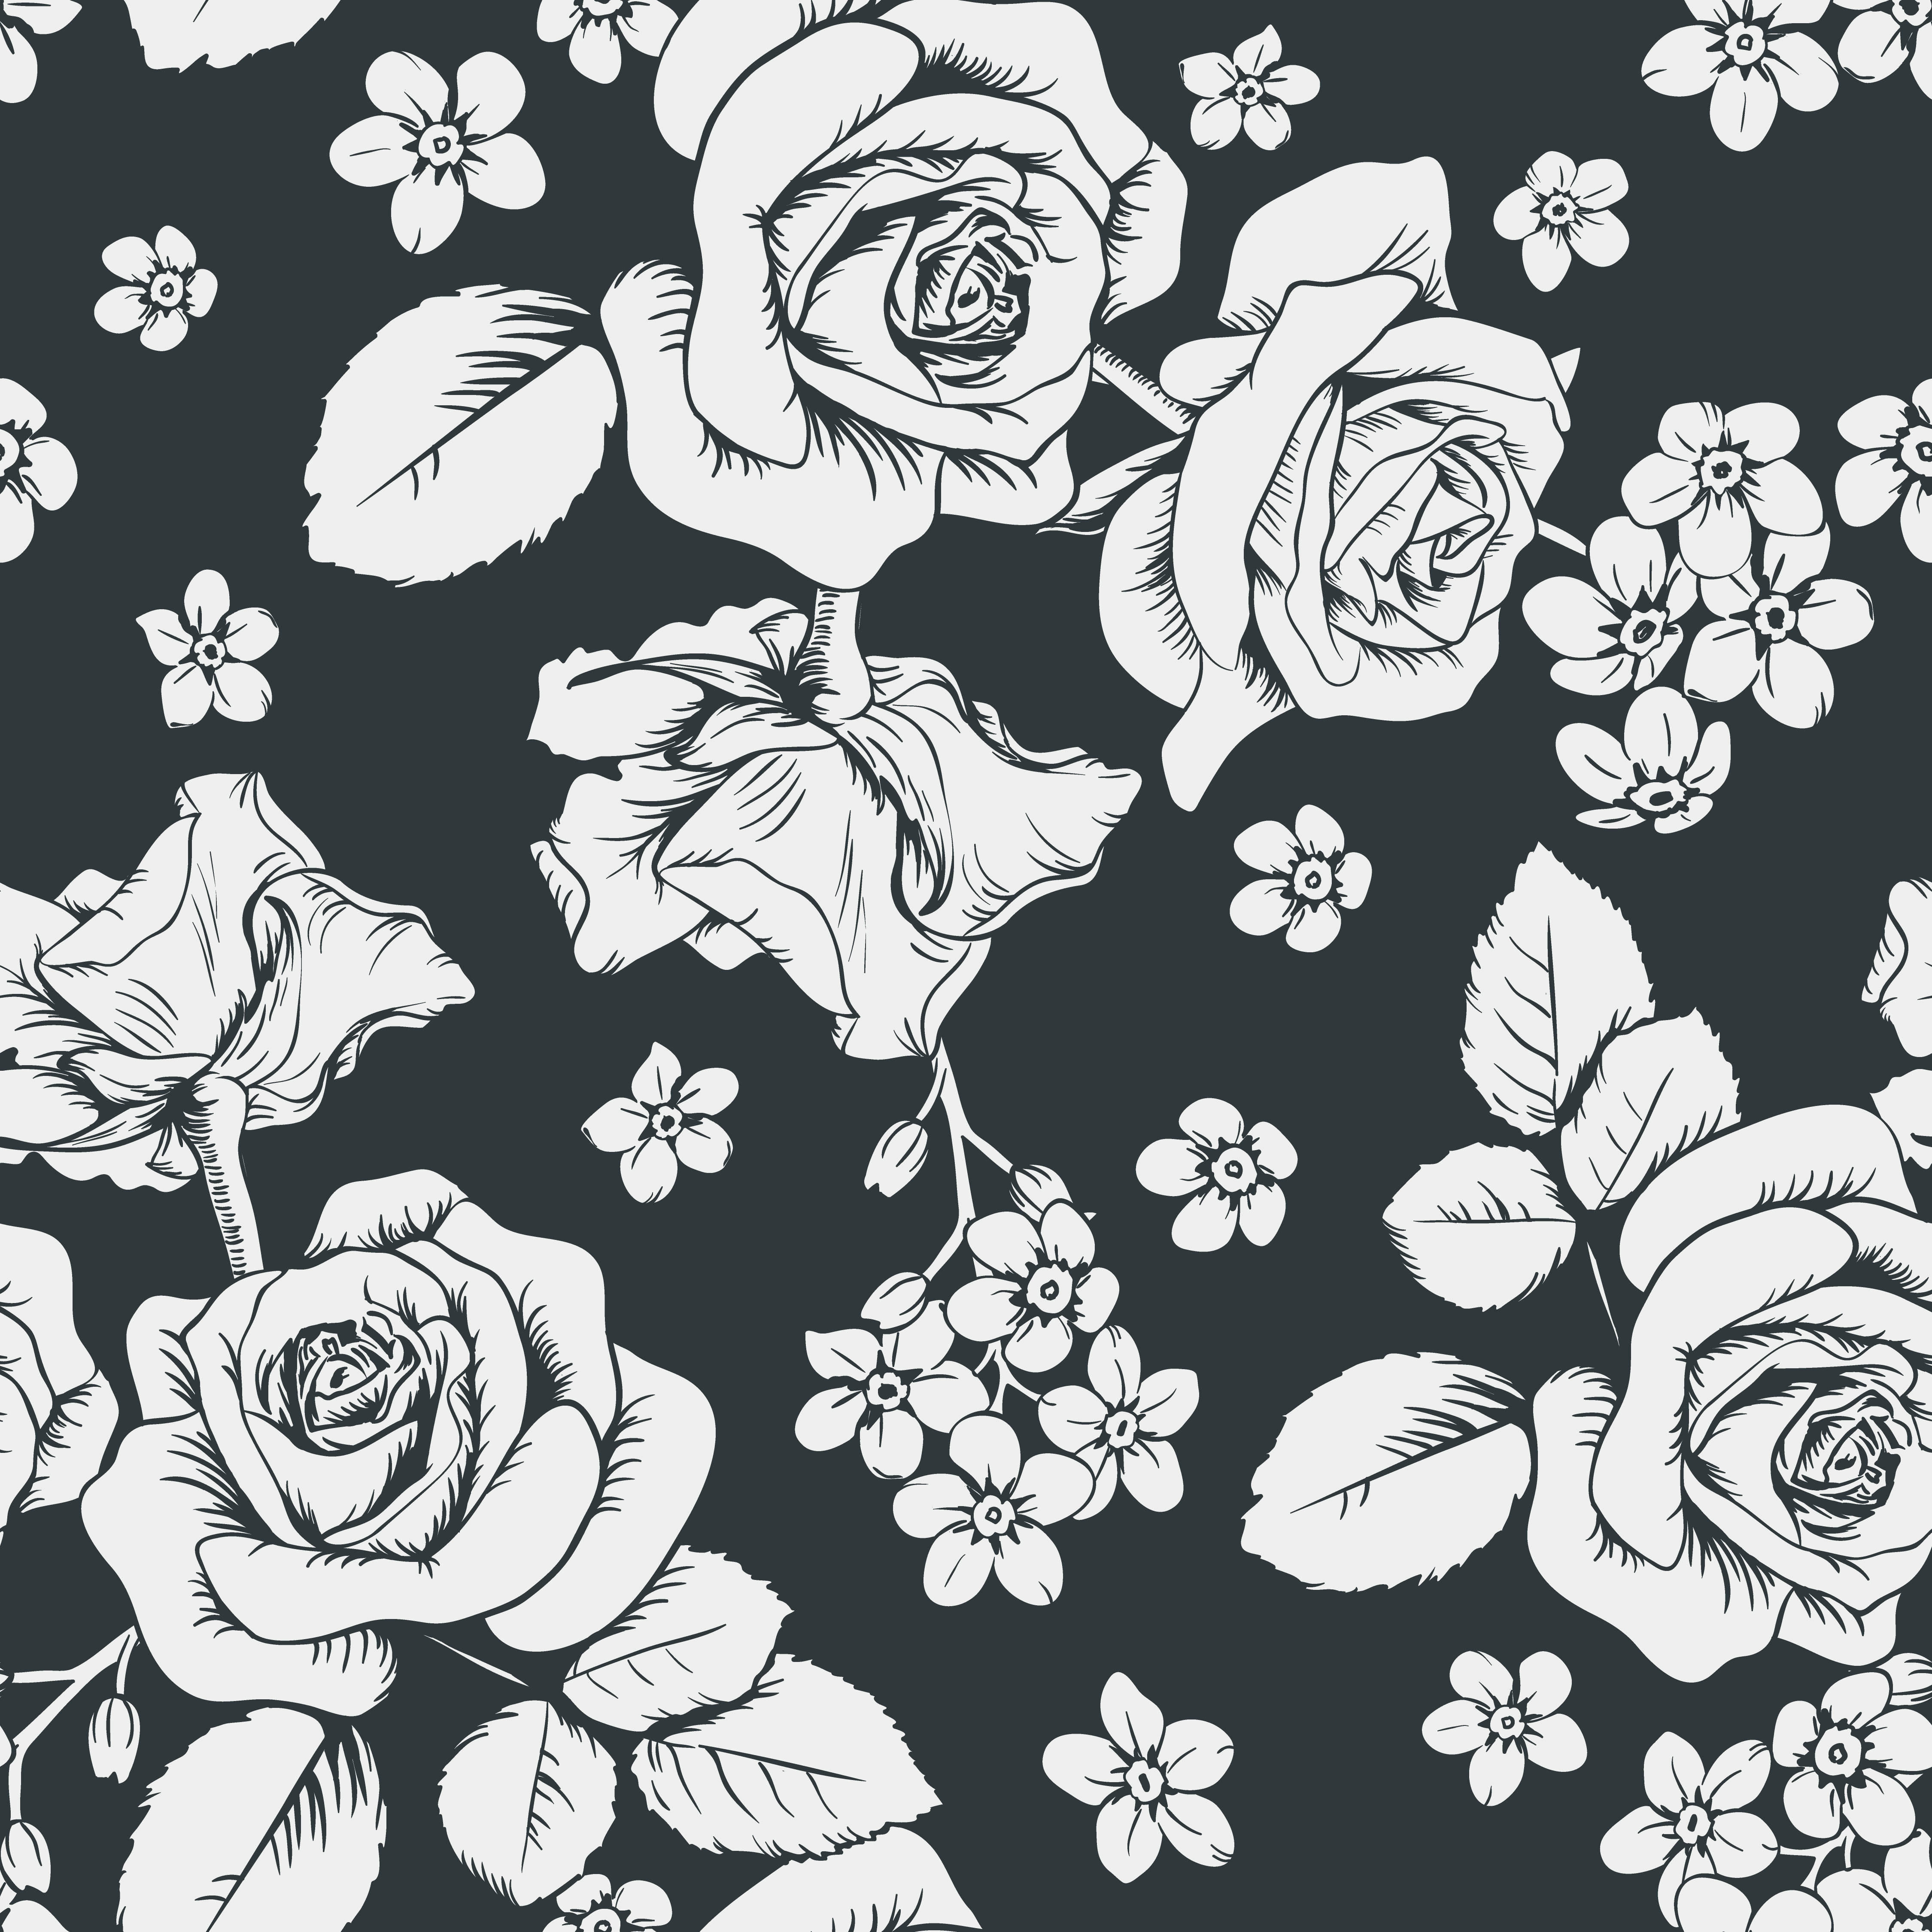 White Roses And Myosotis Flowers On Black Background Seamless